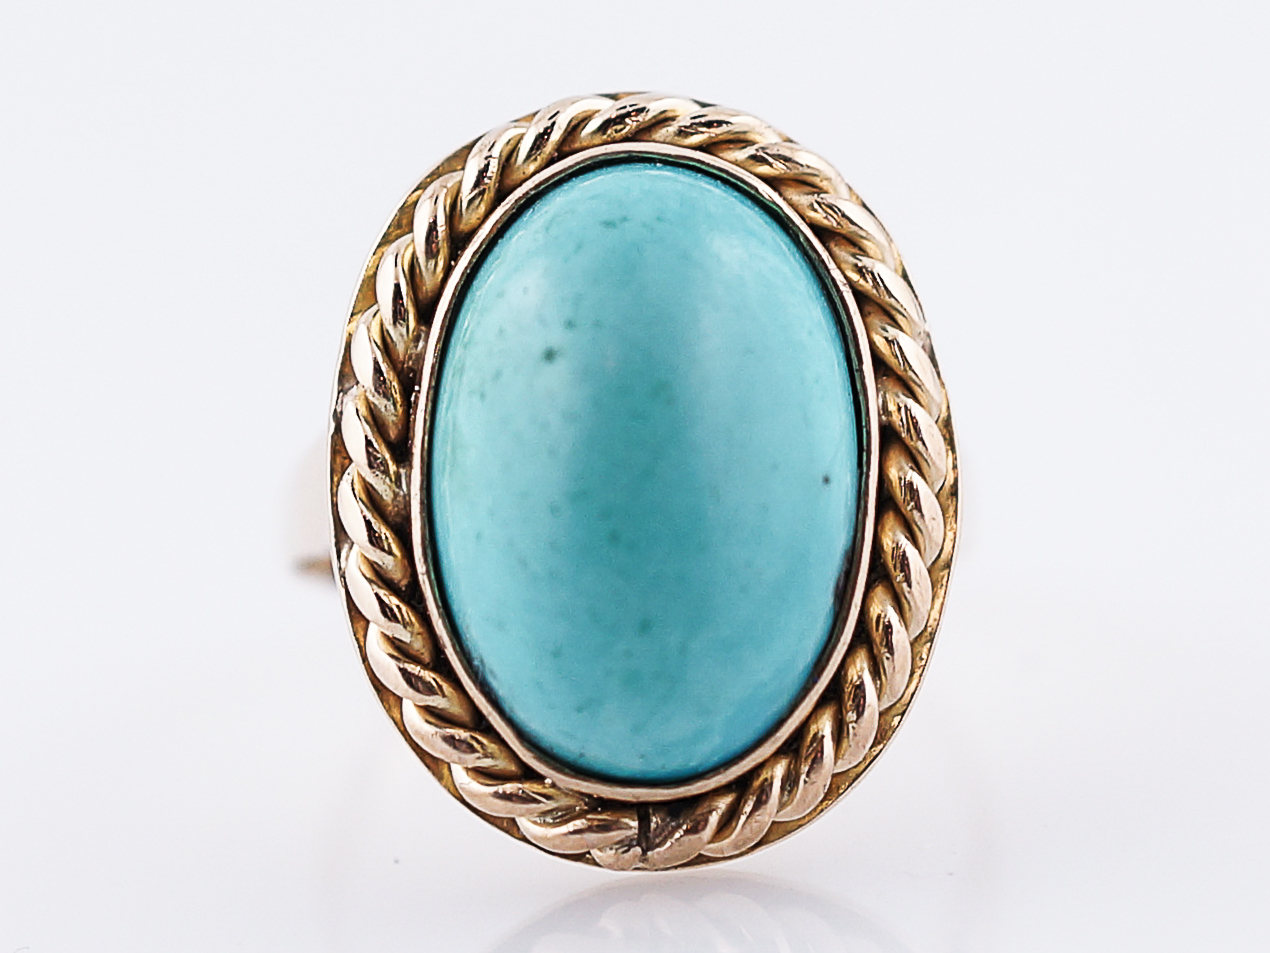 Vintage Right Hand Ring Retro 6.00 Cabochon Oval Cut Turquoise in ...